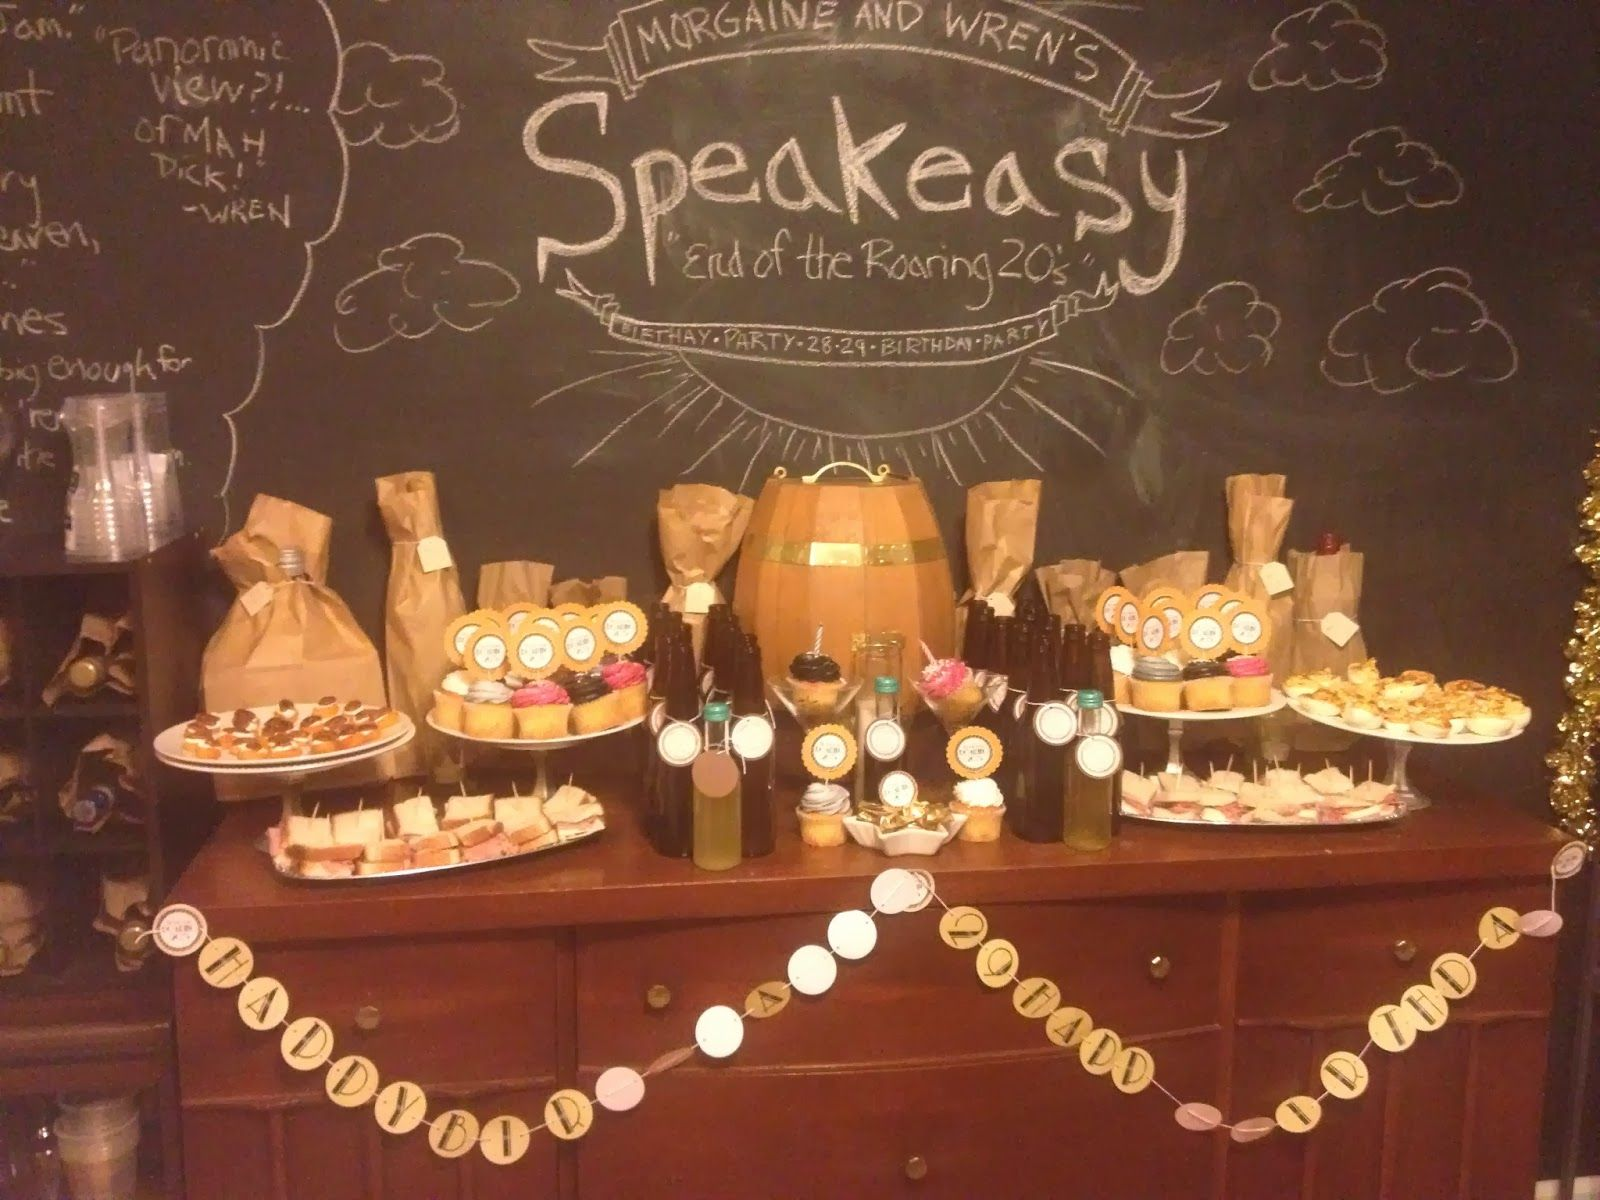 End of the roaring 20s speakeasy birthday party decor and for 1920 party decoration ideas